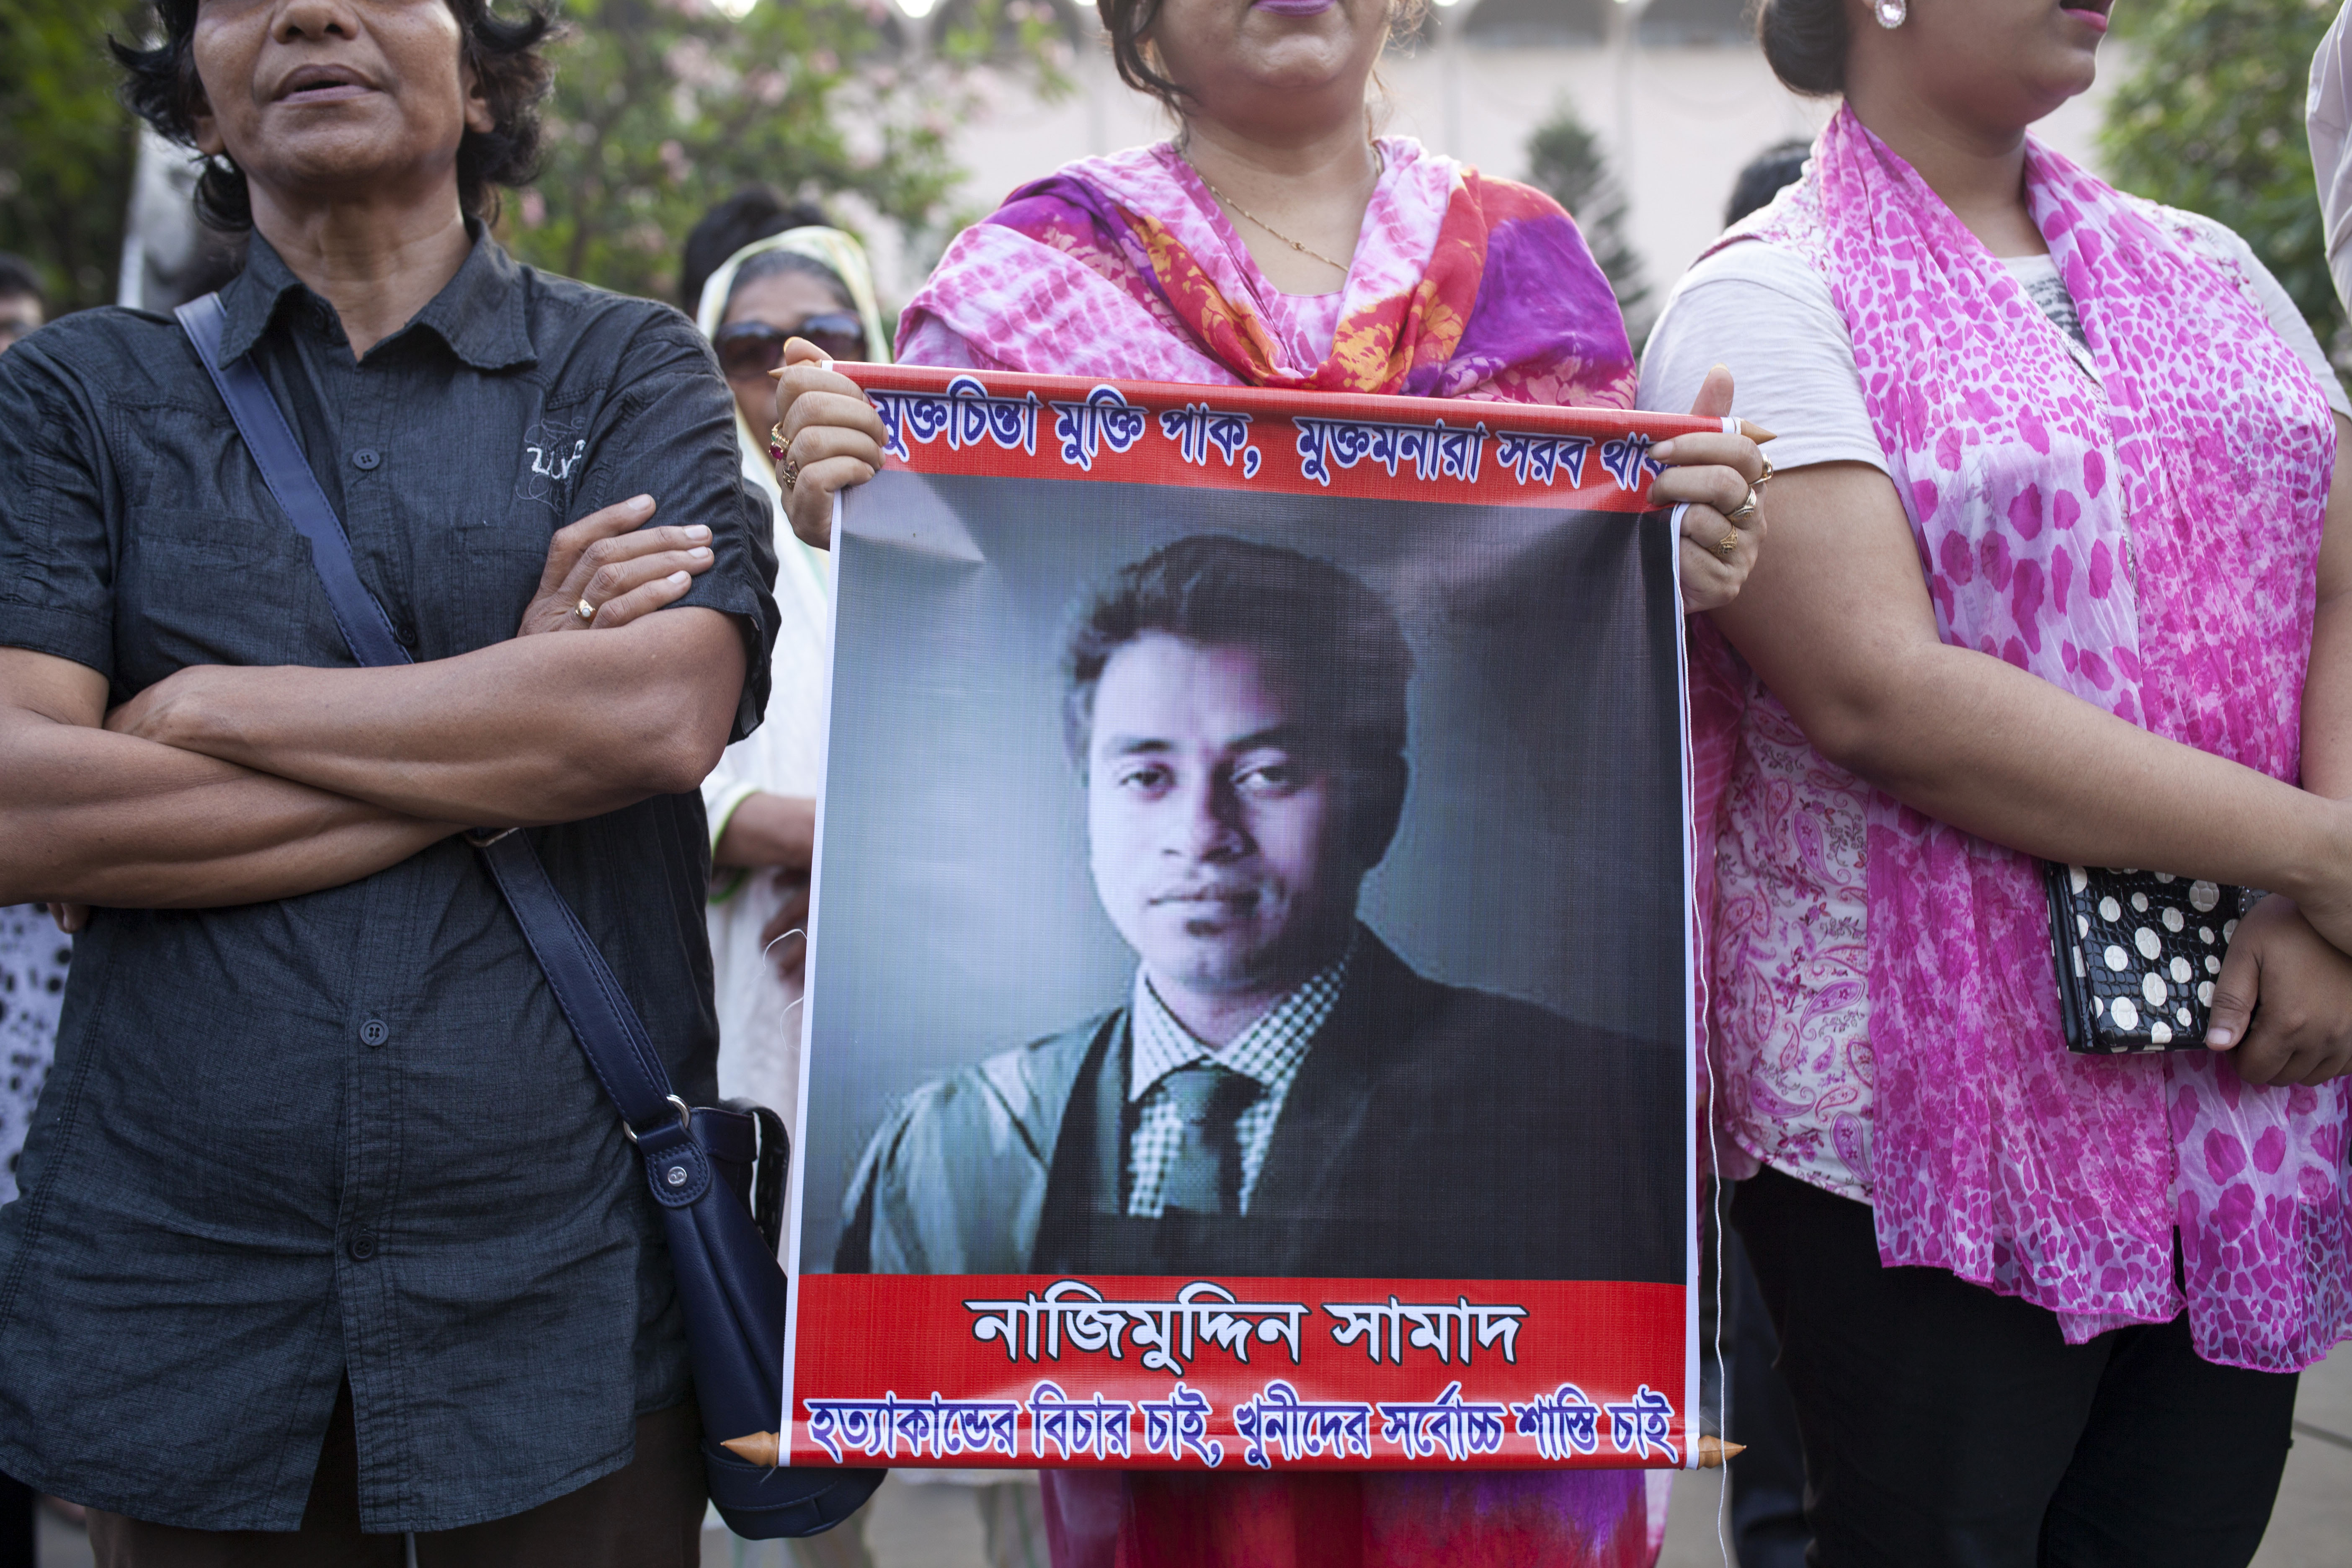 Activists protest at a rally over the murder of activist Nazimuddin Samad on April 7, 2016, in Dhaka, Bangladesh